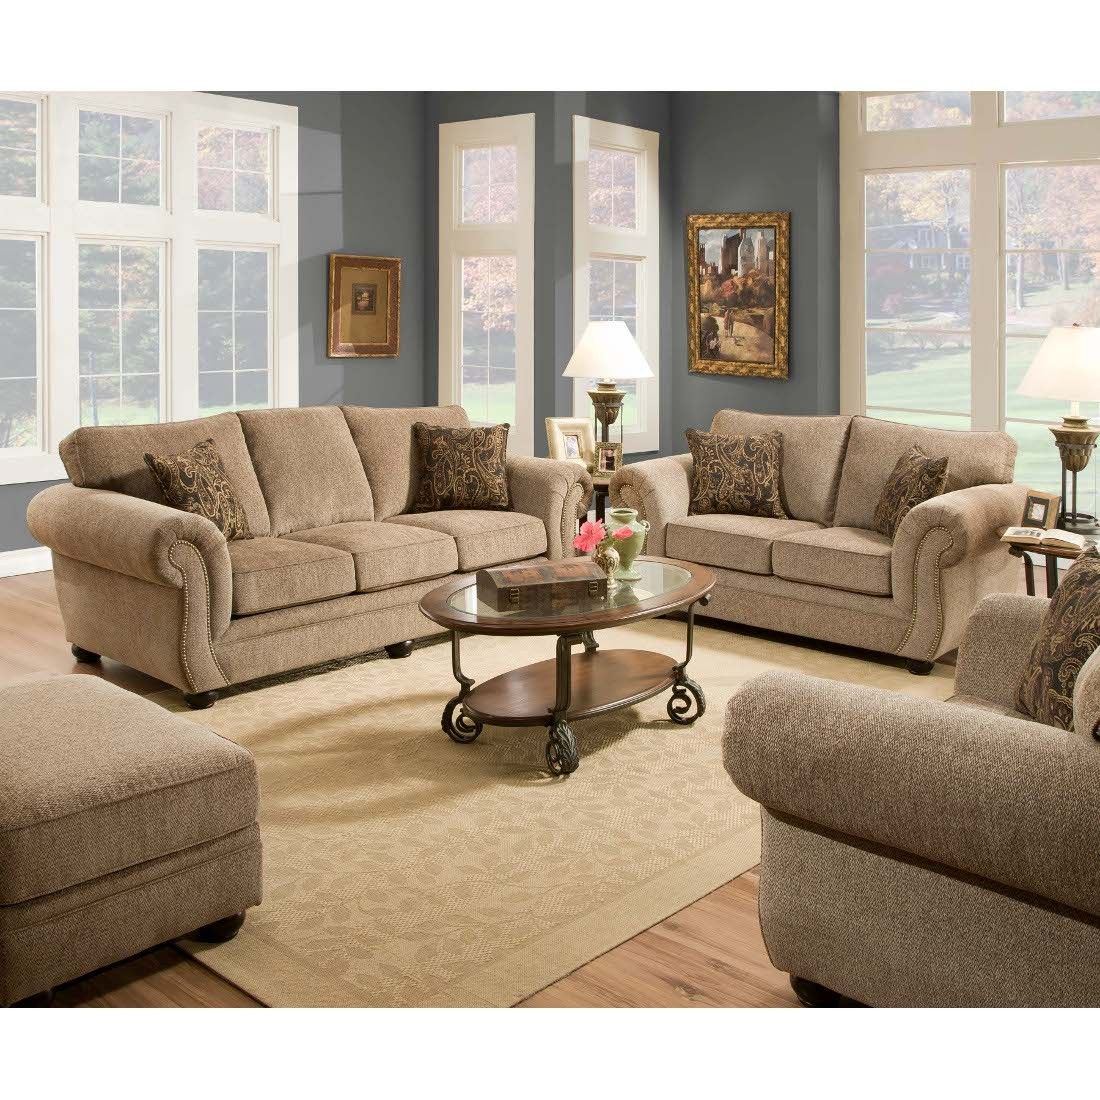 Made To Order Simmons Upholstery Melody Bronze Sofa   Overstock™ Shopping    Great Deals On Simmons Sofas U0026 Loveseats